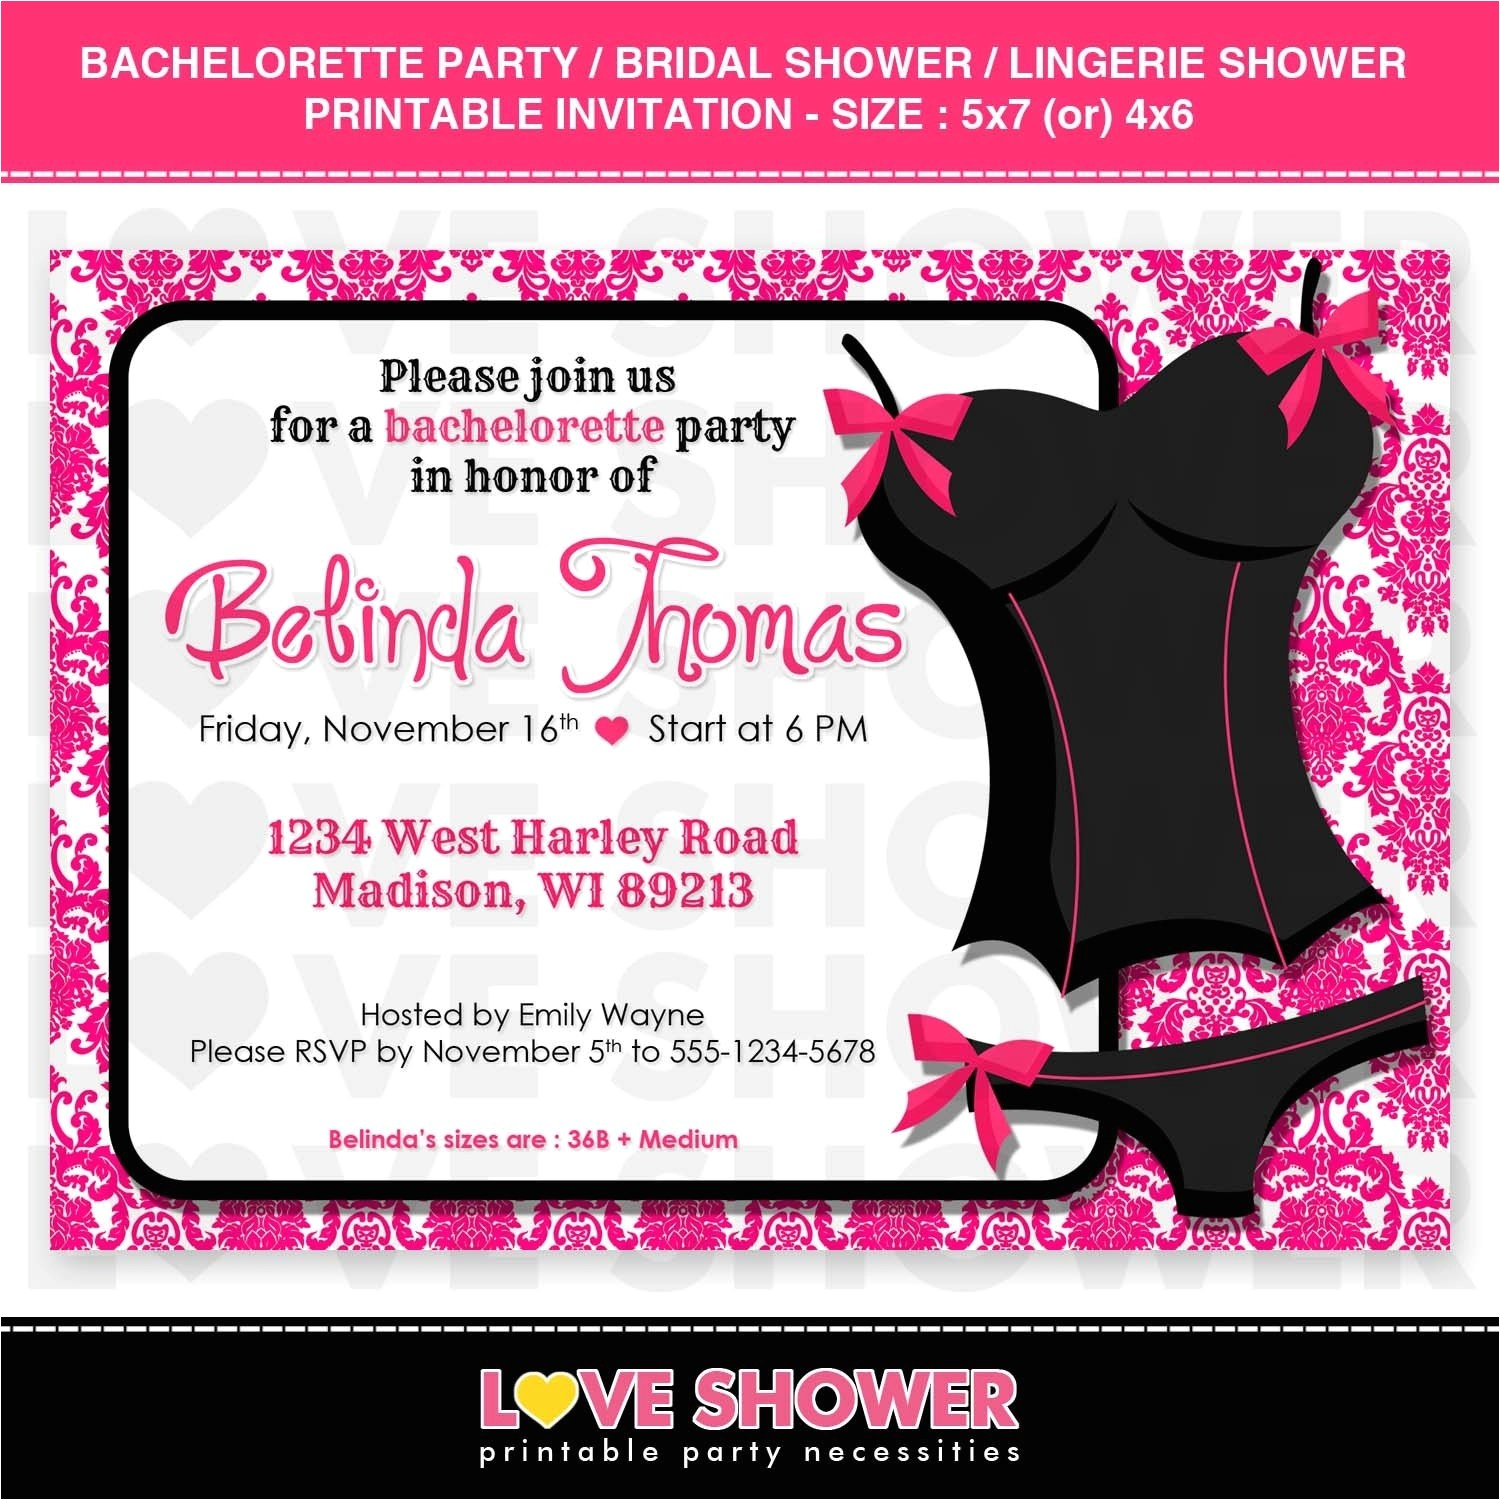 Bridal Shower and Bachelorette Party Invitations Lingerie Bridal Shower Invitations Template Resume Builder